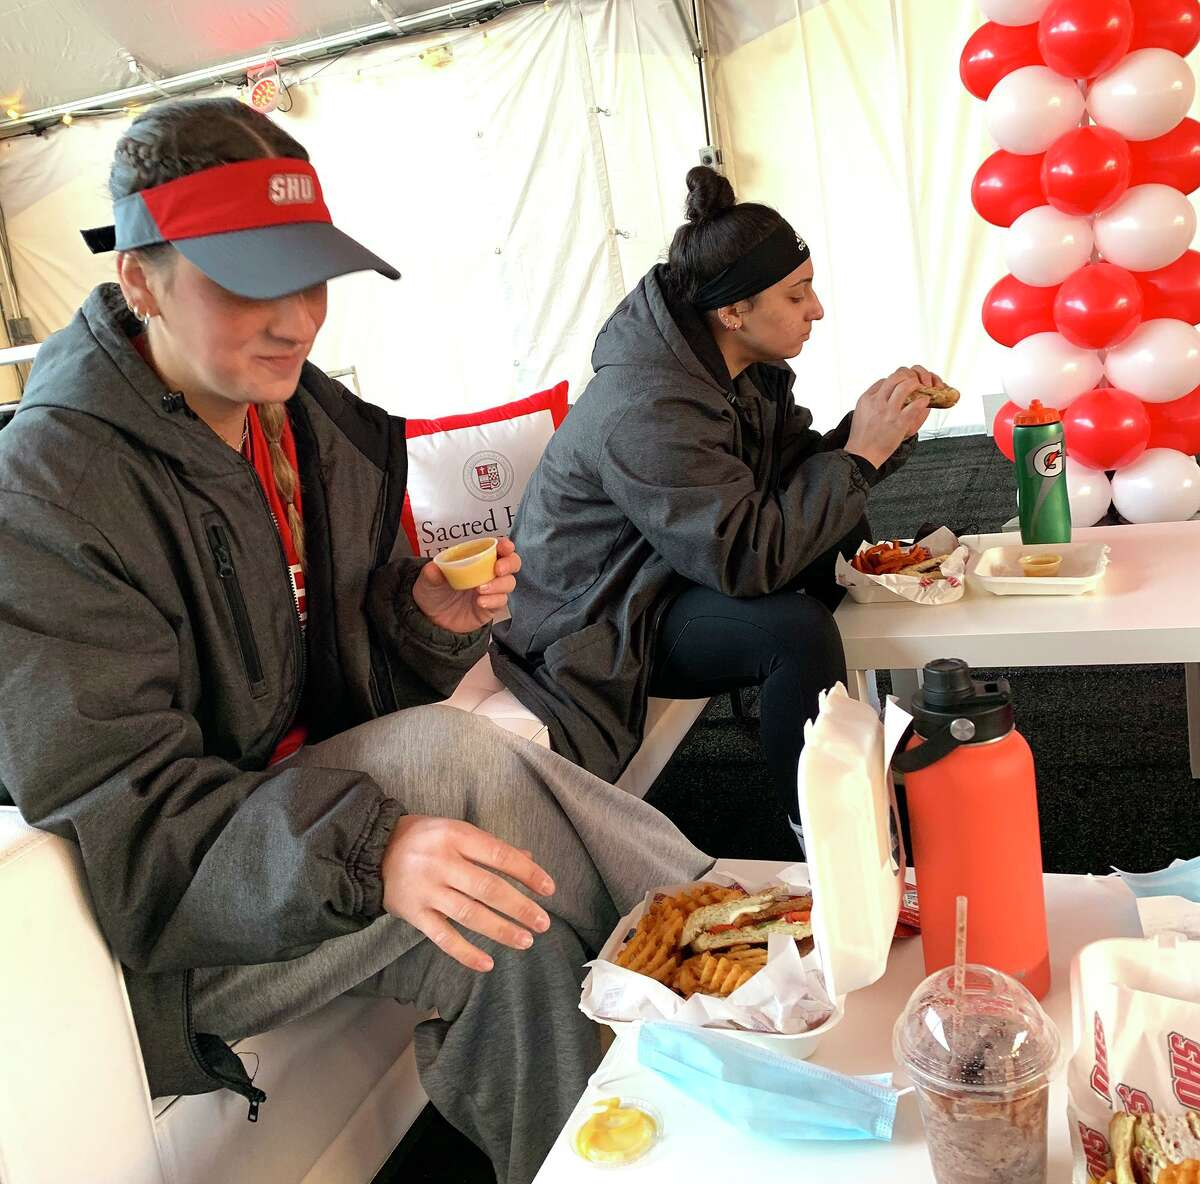 Sacred Heart University students gather in an outdoor tent with 3,500 square feet of space for them to socialize as the school relaxes some of its COVID restrictions.